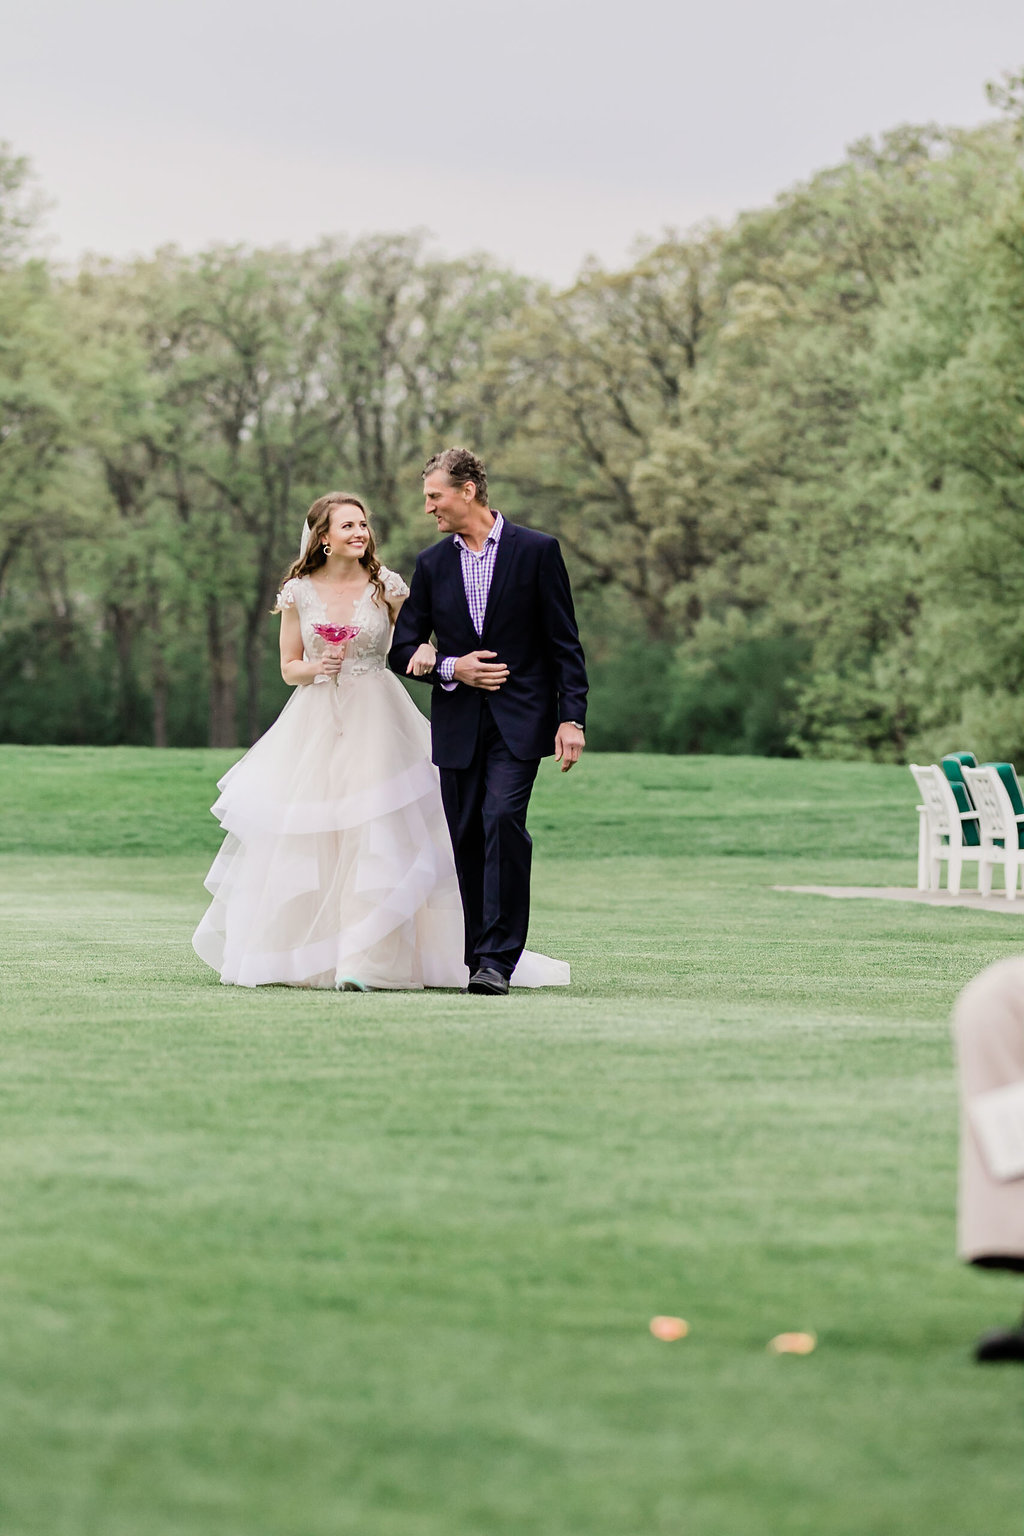 Elizabeth M Photography Washington DC Wedding Photographer Northern Virginia Maryland Destination Fine Art Elegant Engagement95